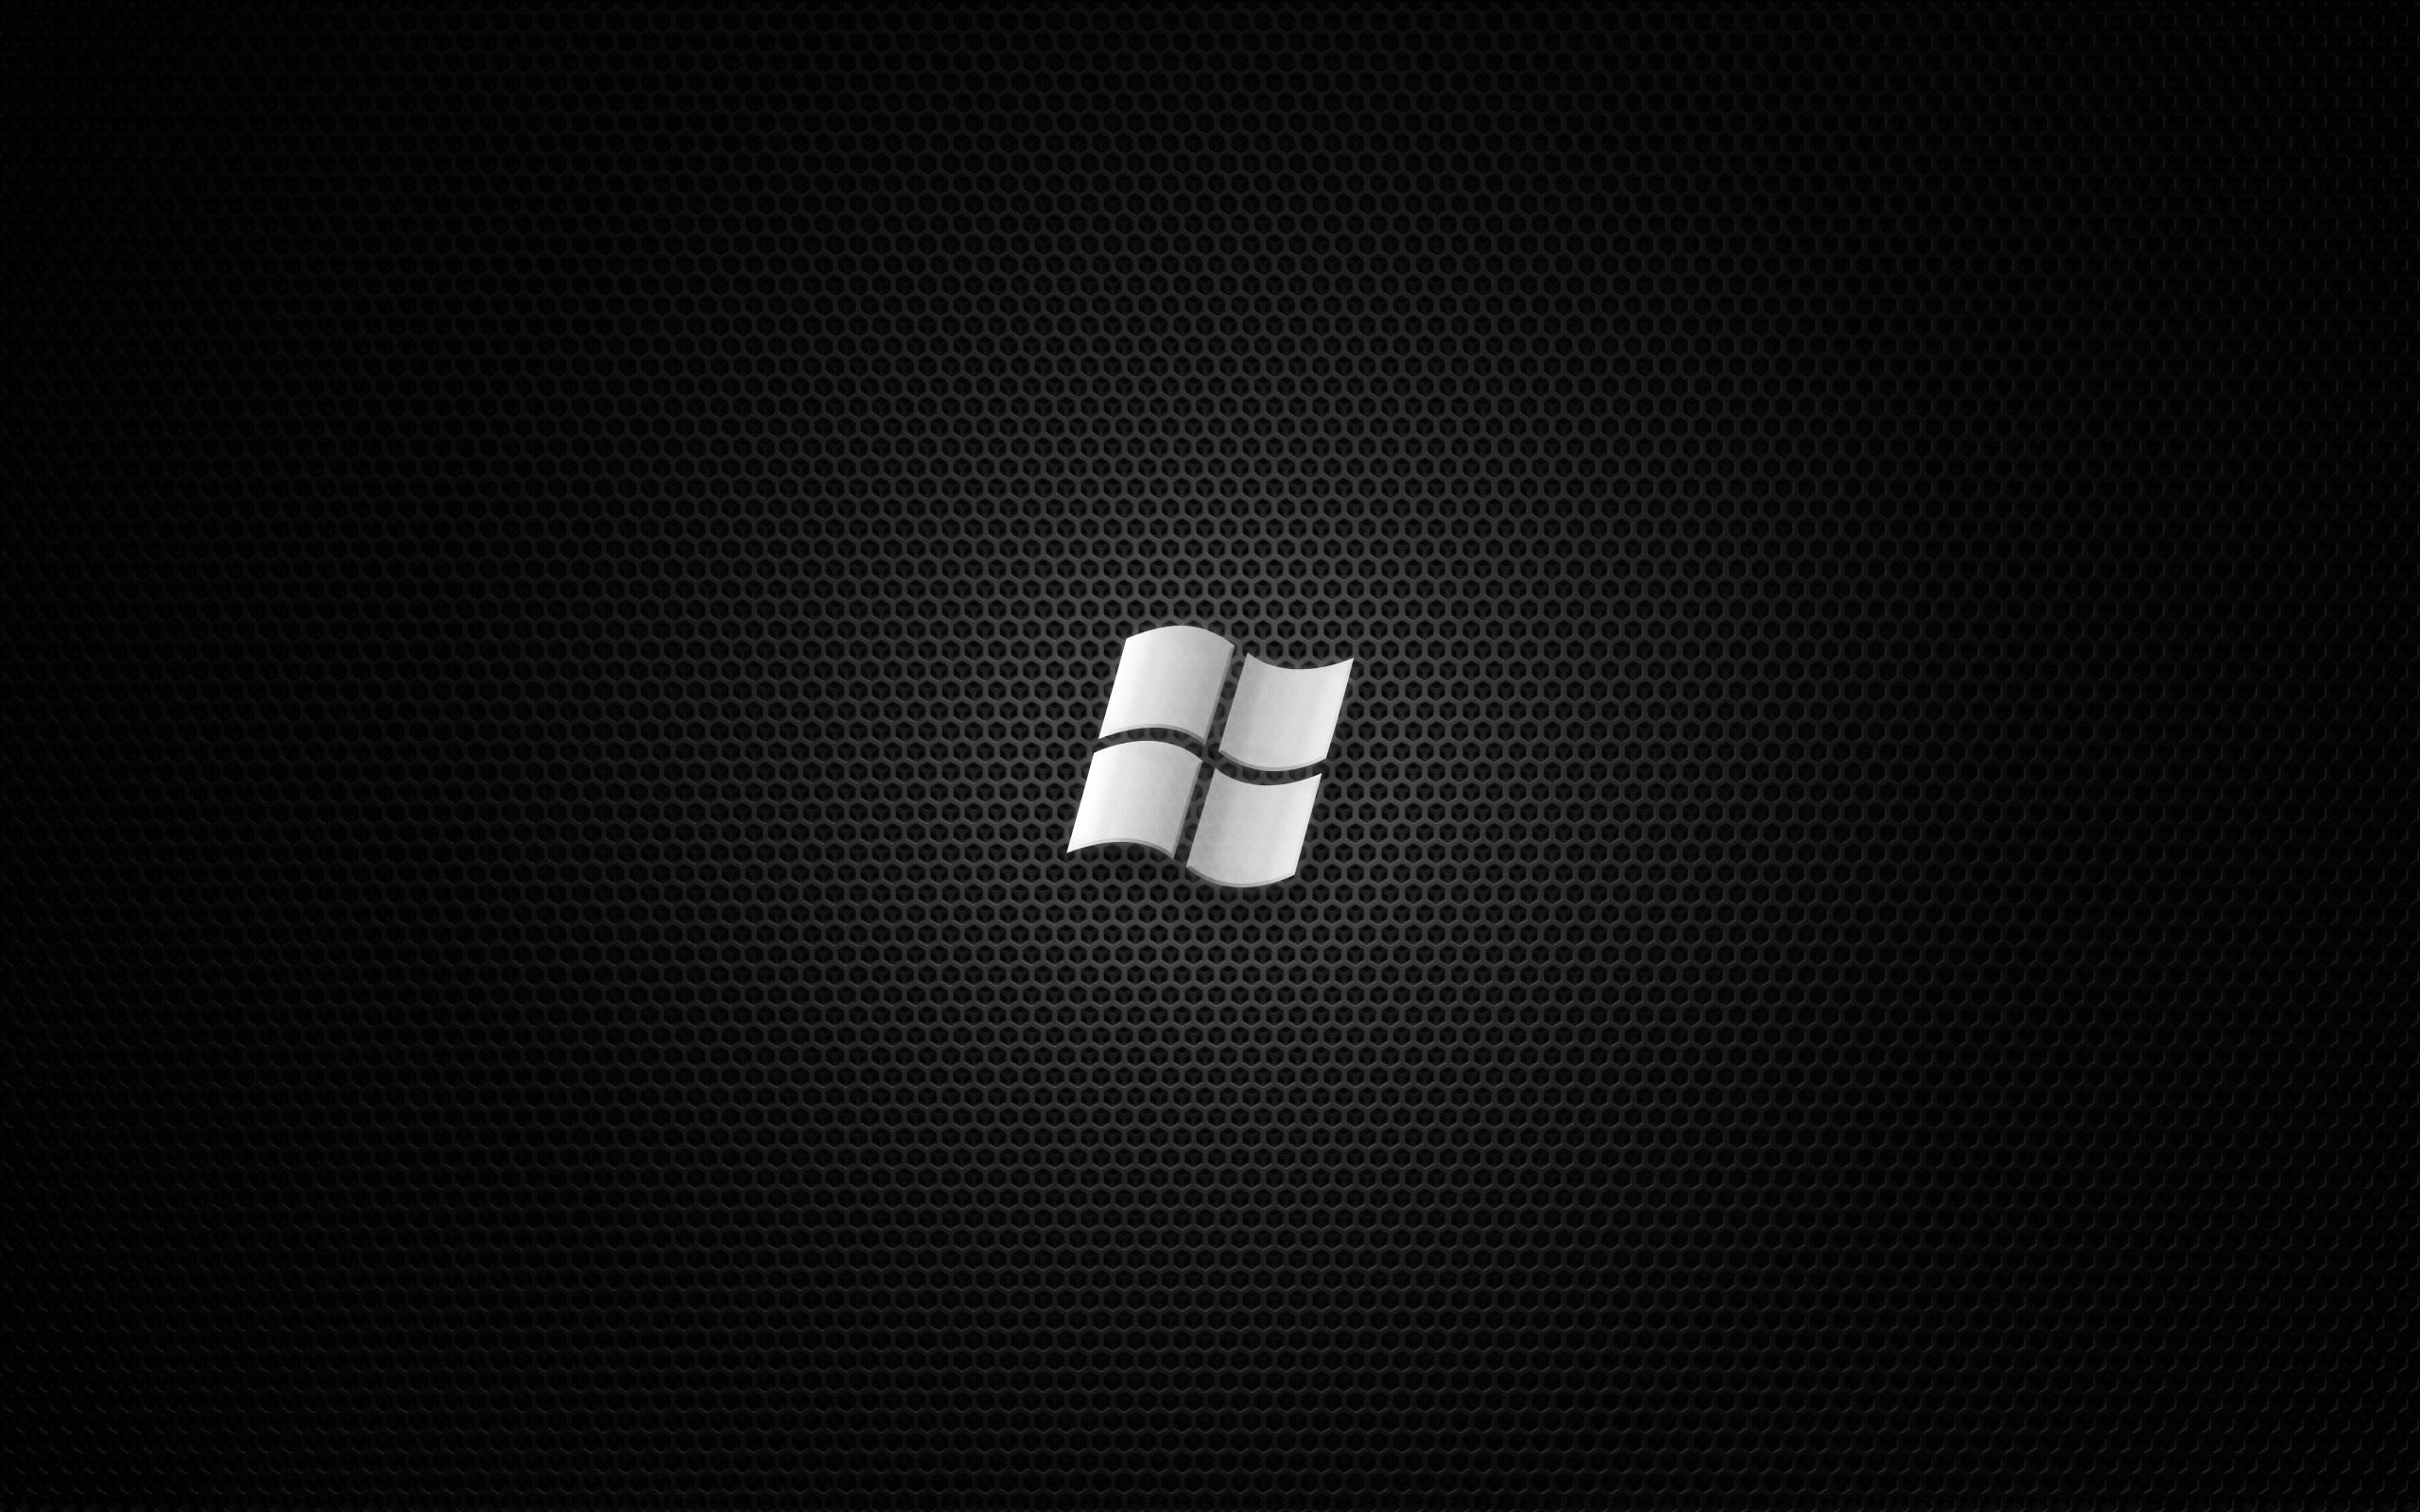 Awesome Download Windows Black Gray Icon Wallpaper Hd Black Desktop Pc Desktop Wallpaper Wallpaper Pc